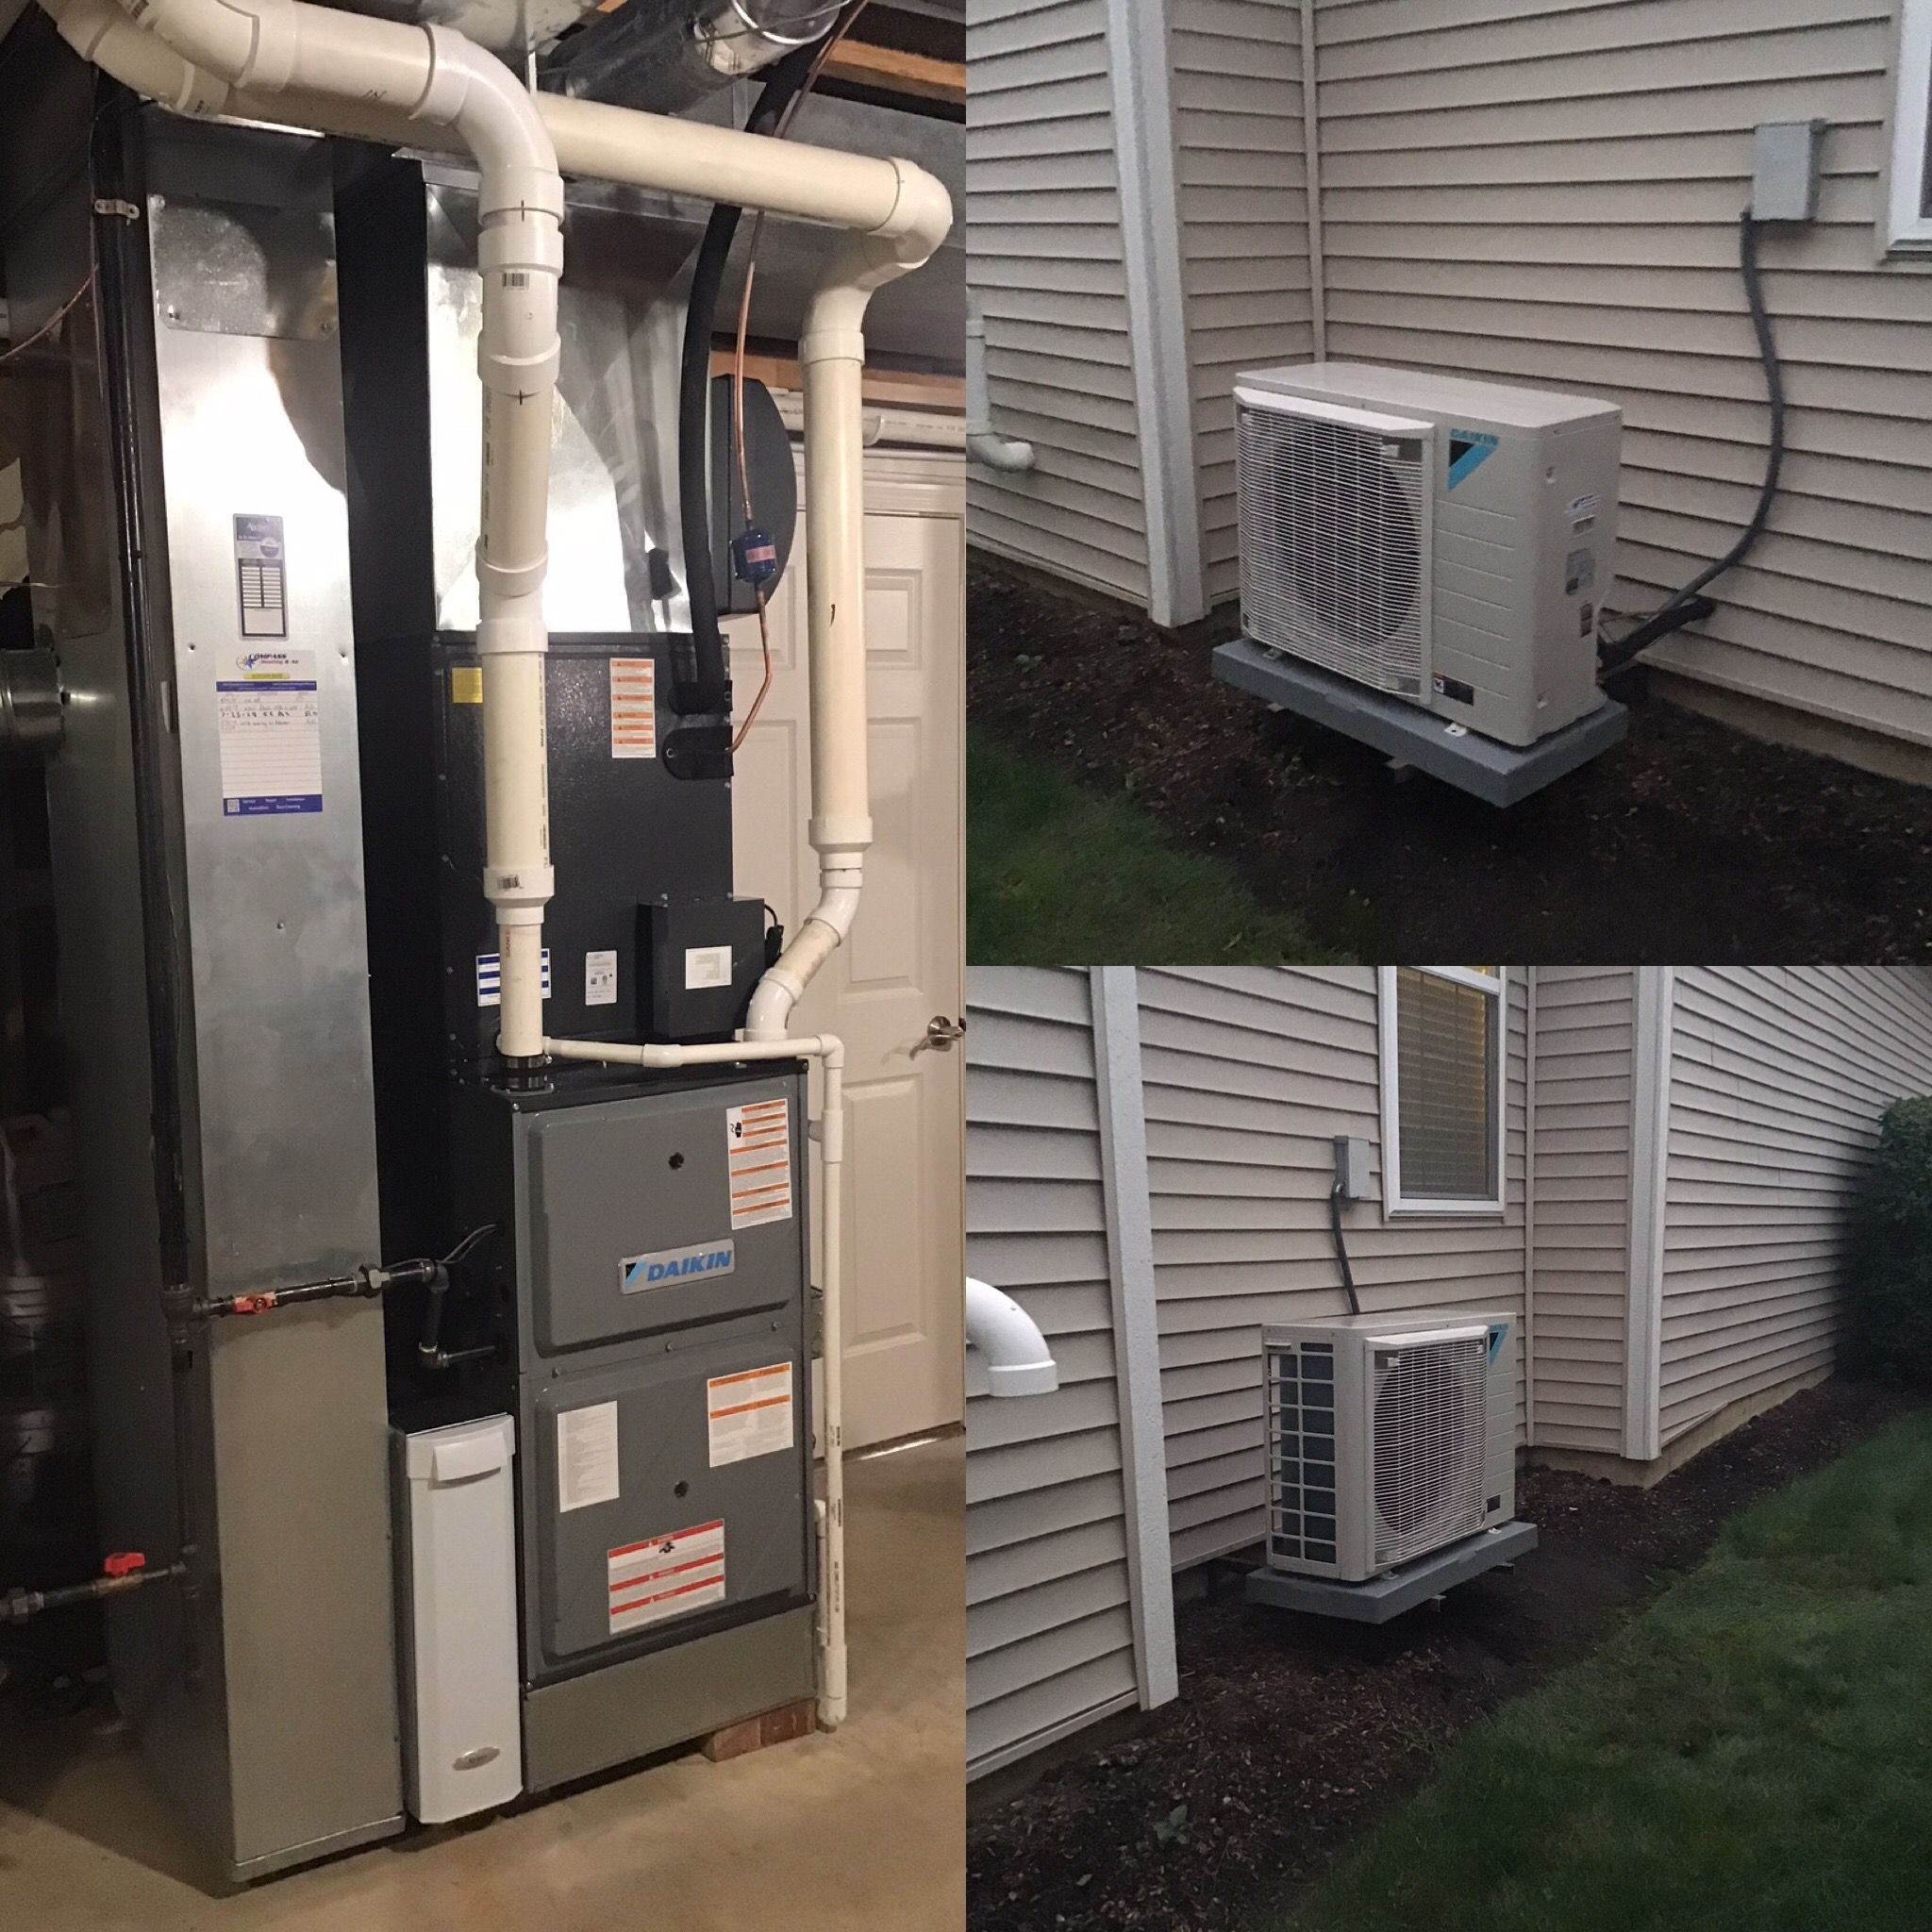 Air Conditioning Repair St. Louis Why is My AC Leaking